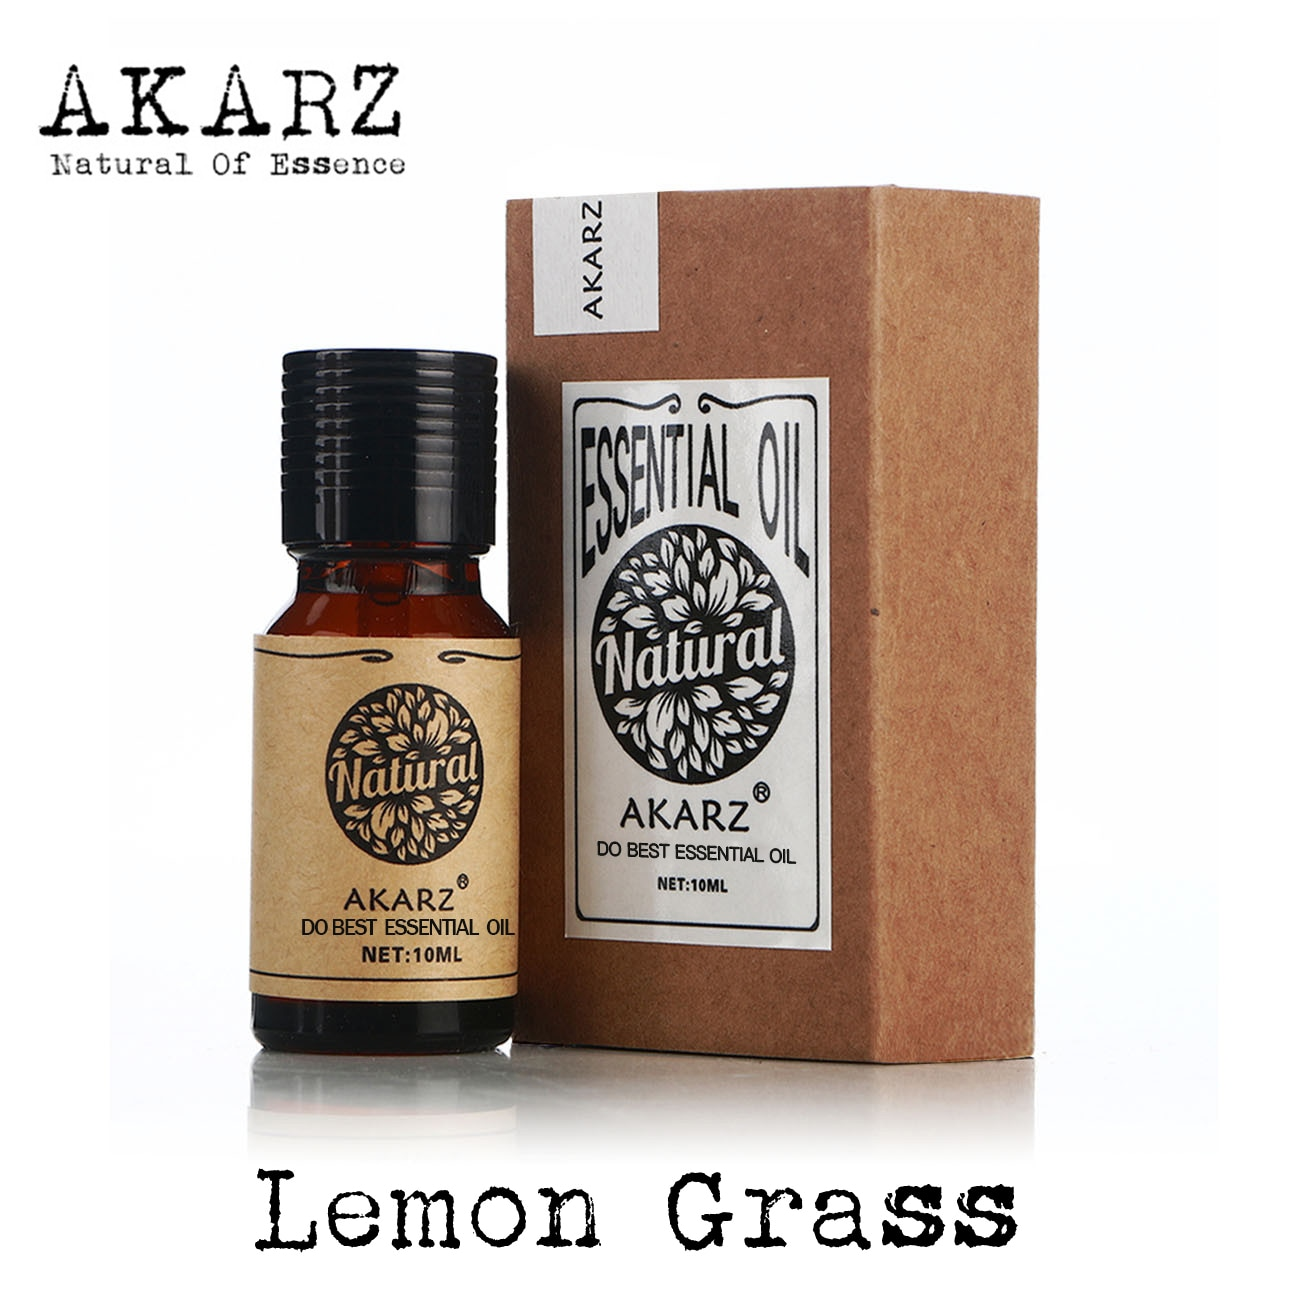 AKARZ Famous brand natural aromatherapy lemon grass essential oil Prevent beriberi Mosquito repellen